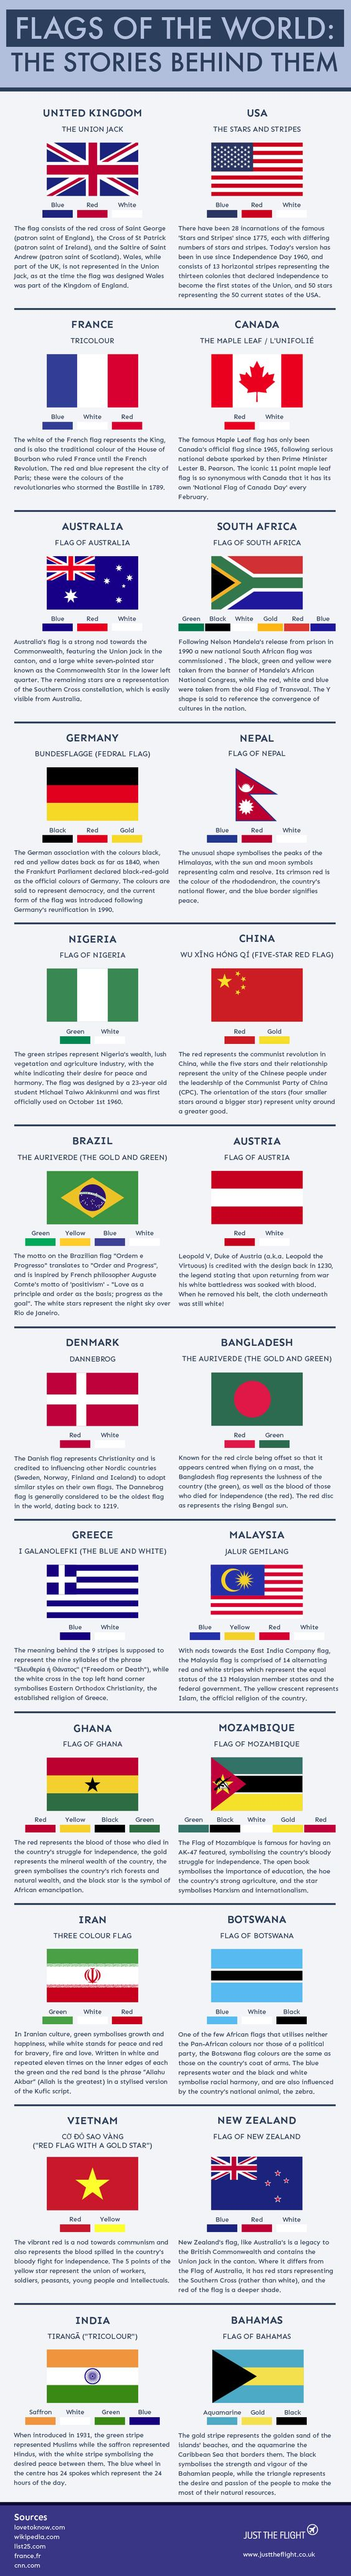 Flags of the World: The Stories Behind Them #infographic #Flags #Travel